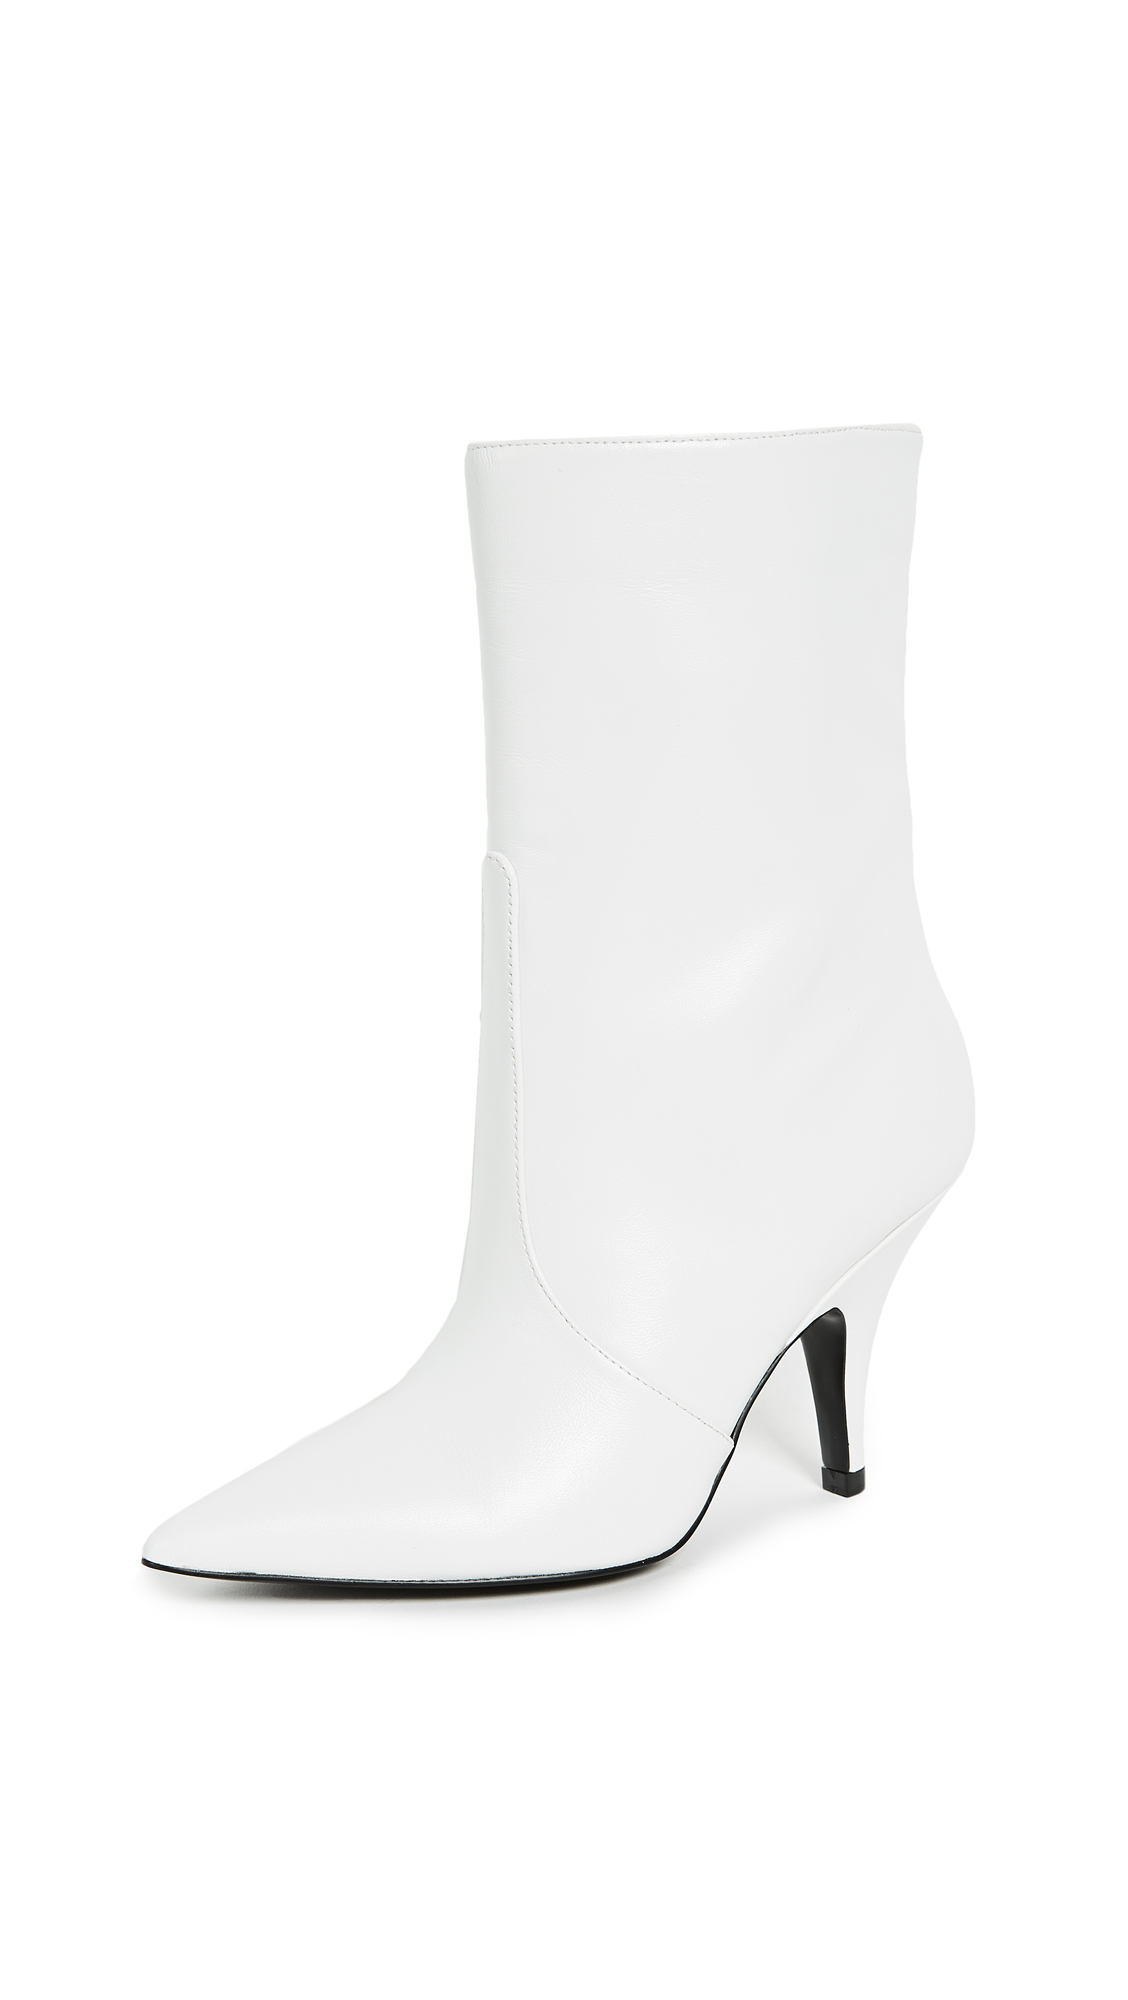 KENDALL + KYLIE Calie Point Toe Boots - White